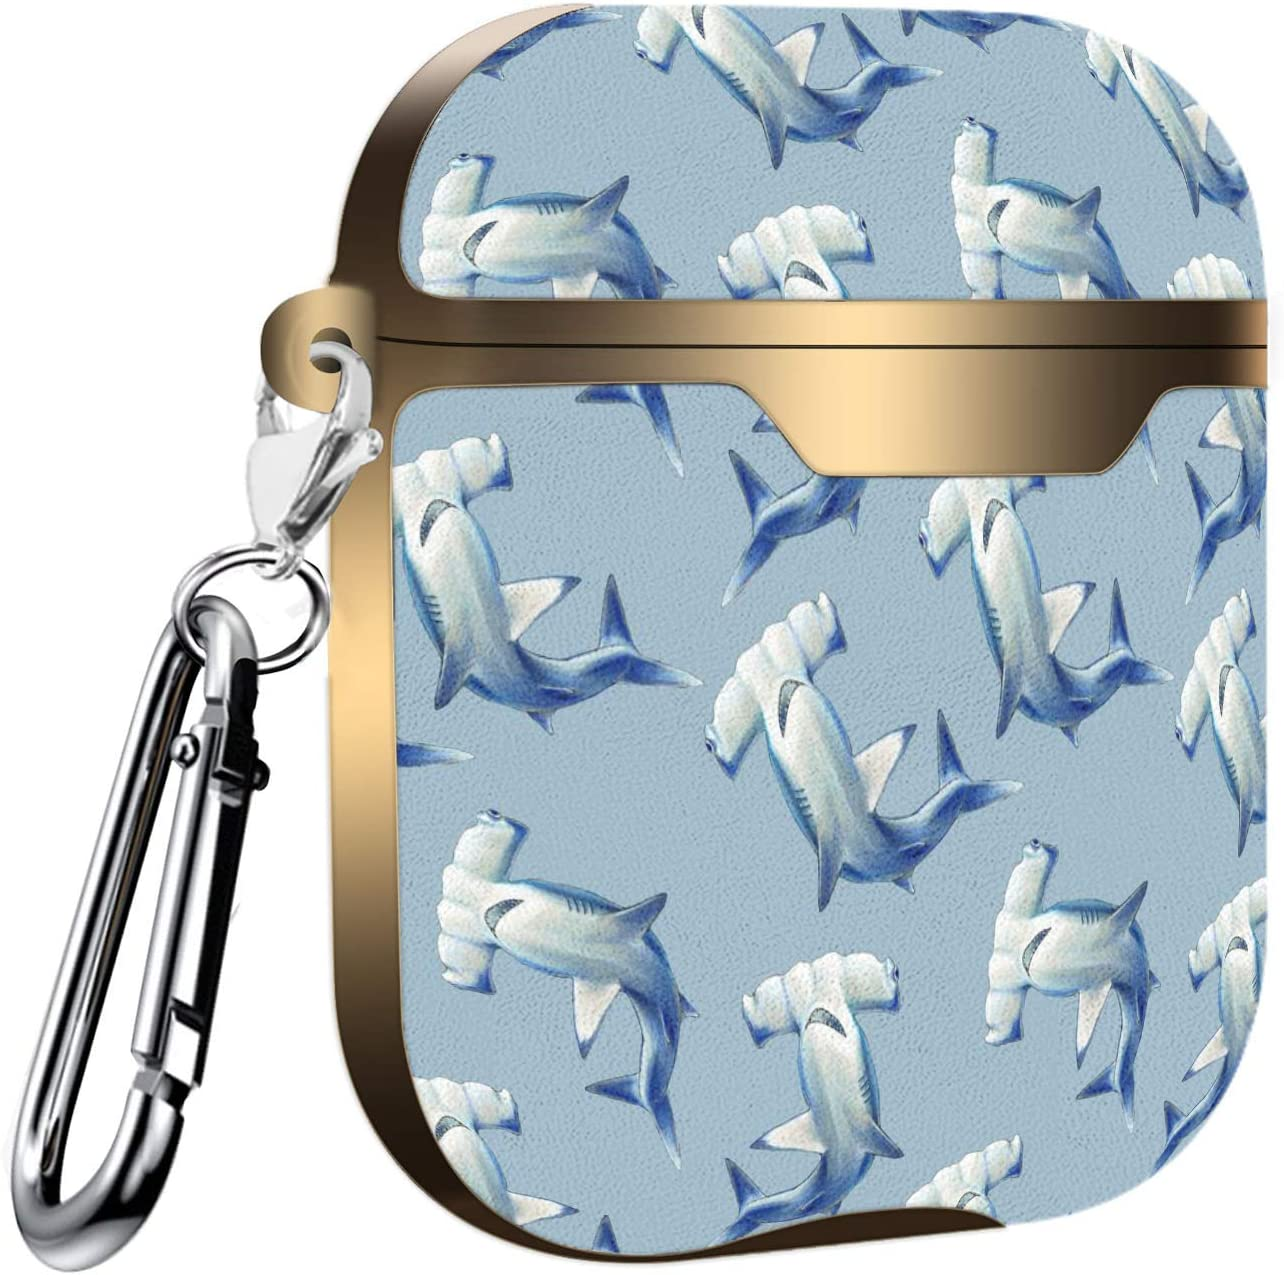 Hammerhead Shark Slim Form Fitted Printing Pattern Cover Case with Carabiner Compatible with Airpods 1 and AirPods 2